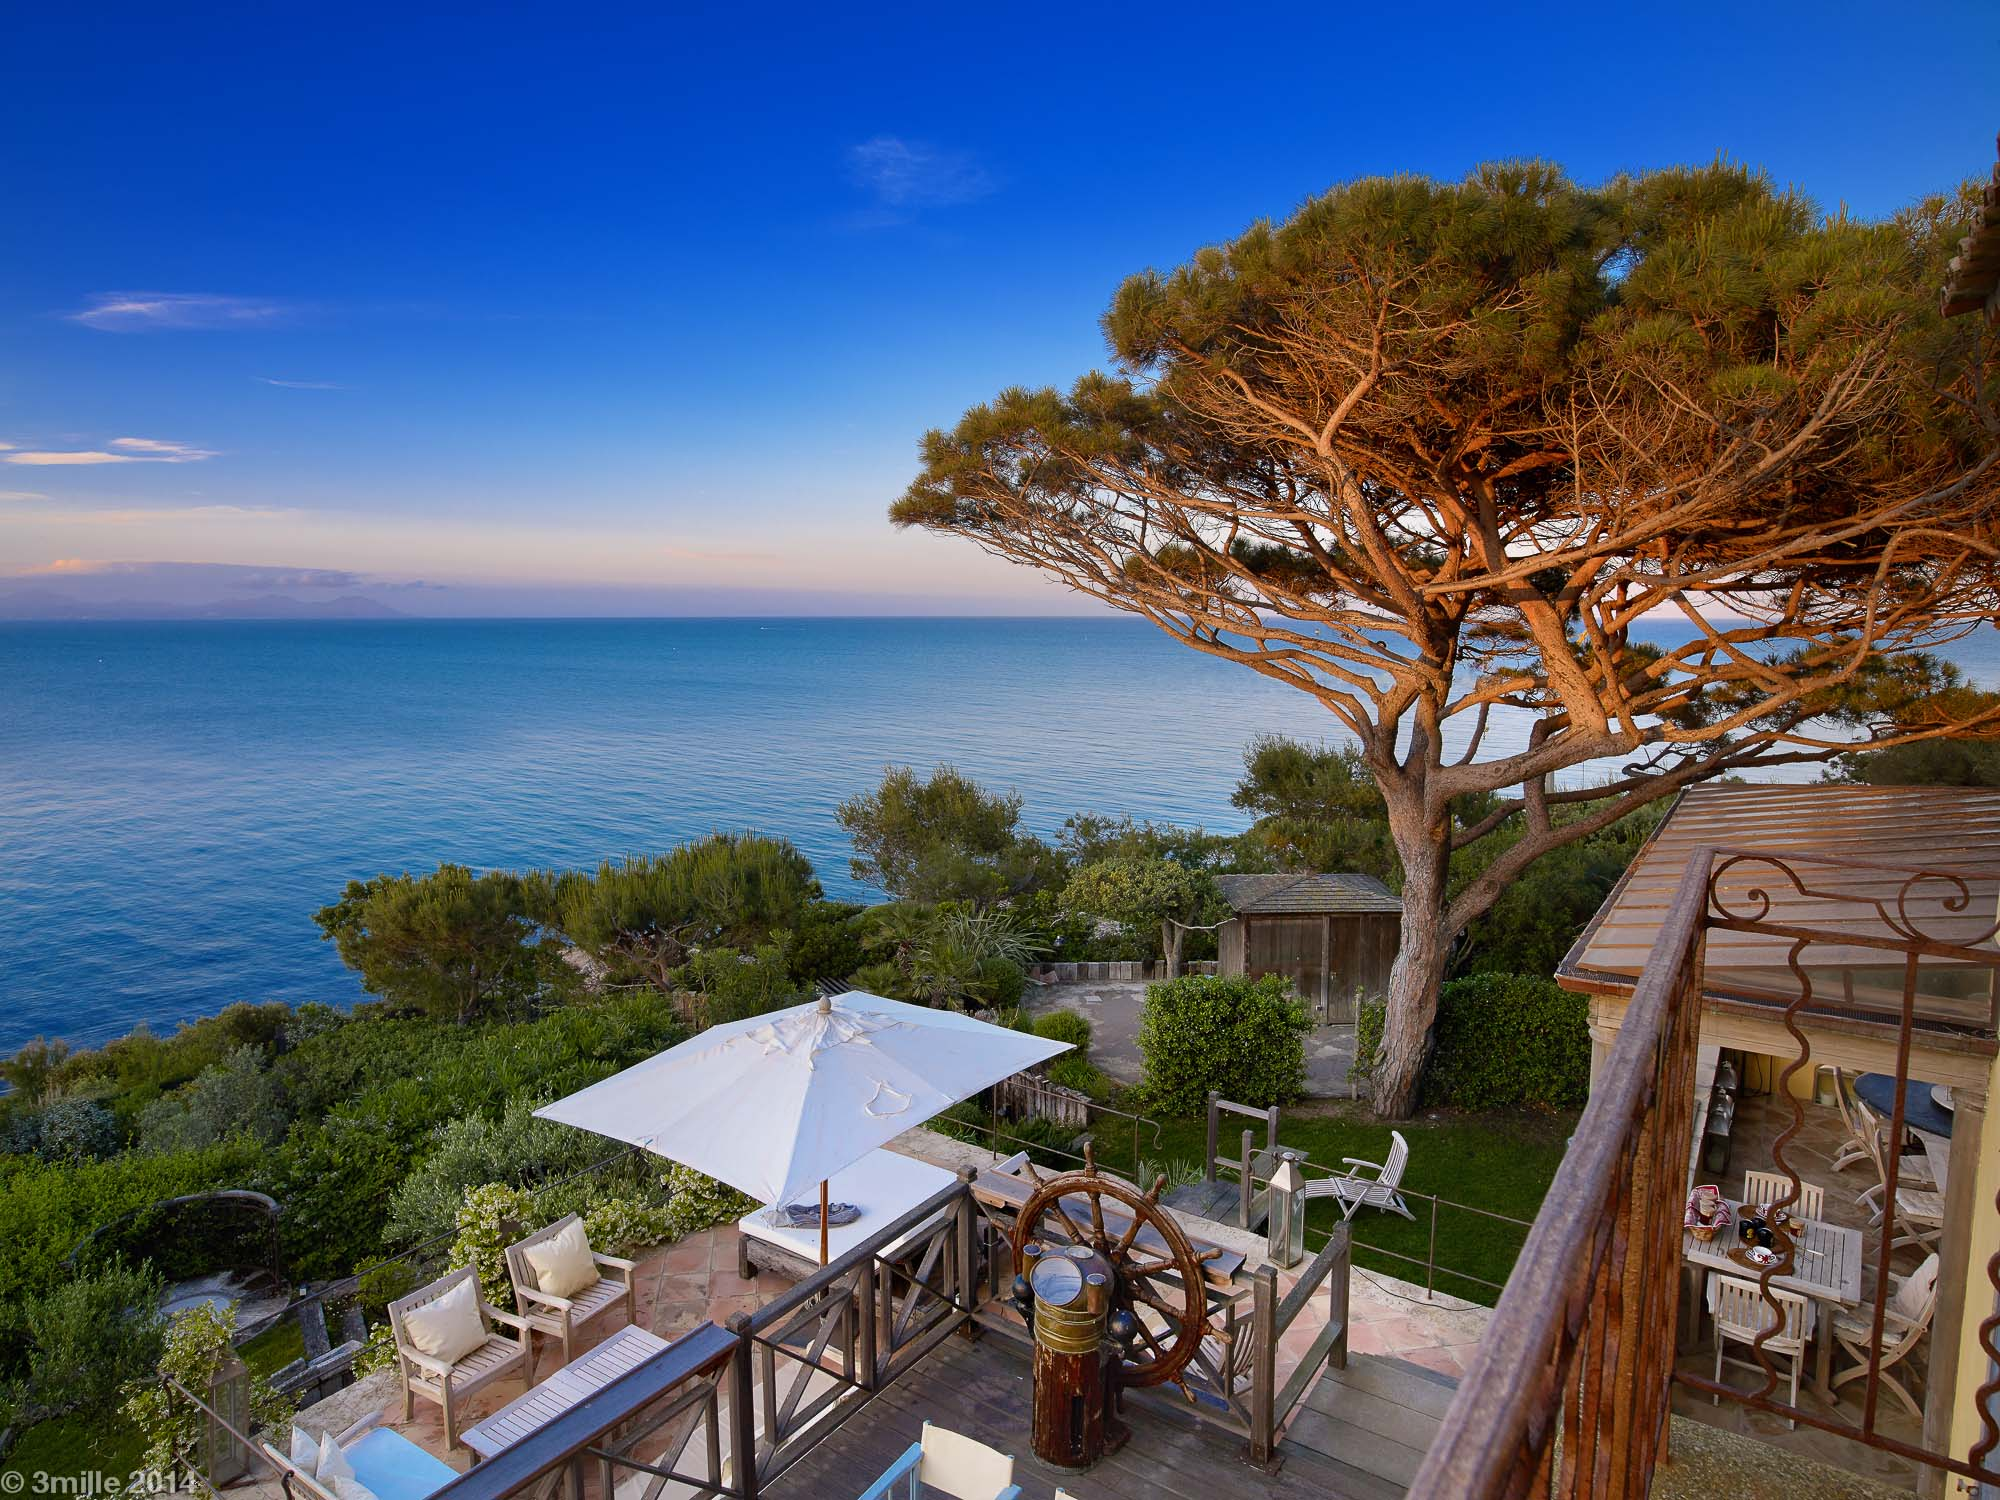 Moradia para Venda às Luxury property with amazing sea views in the Parcs of Saint-Tropez Saint Tropez Saint Tropez, Provença-Alpes-Costa Azul, 83990 França